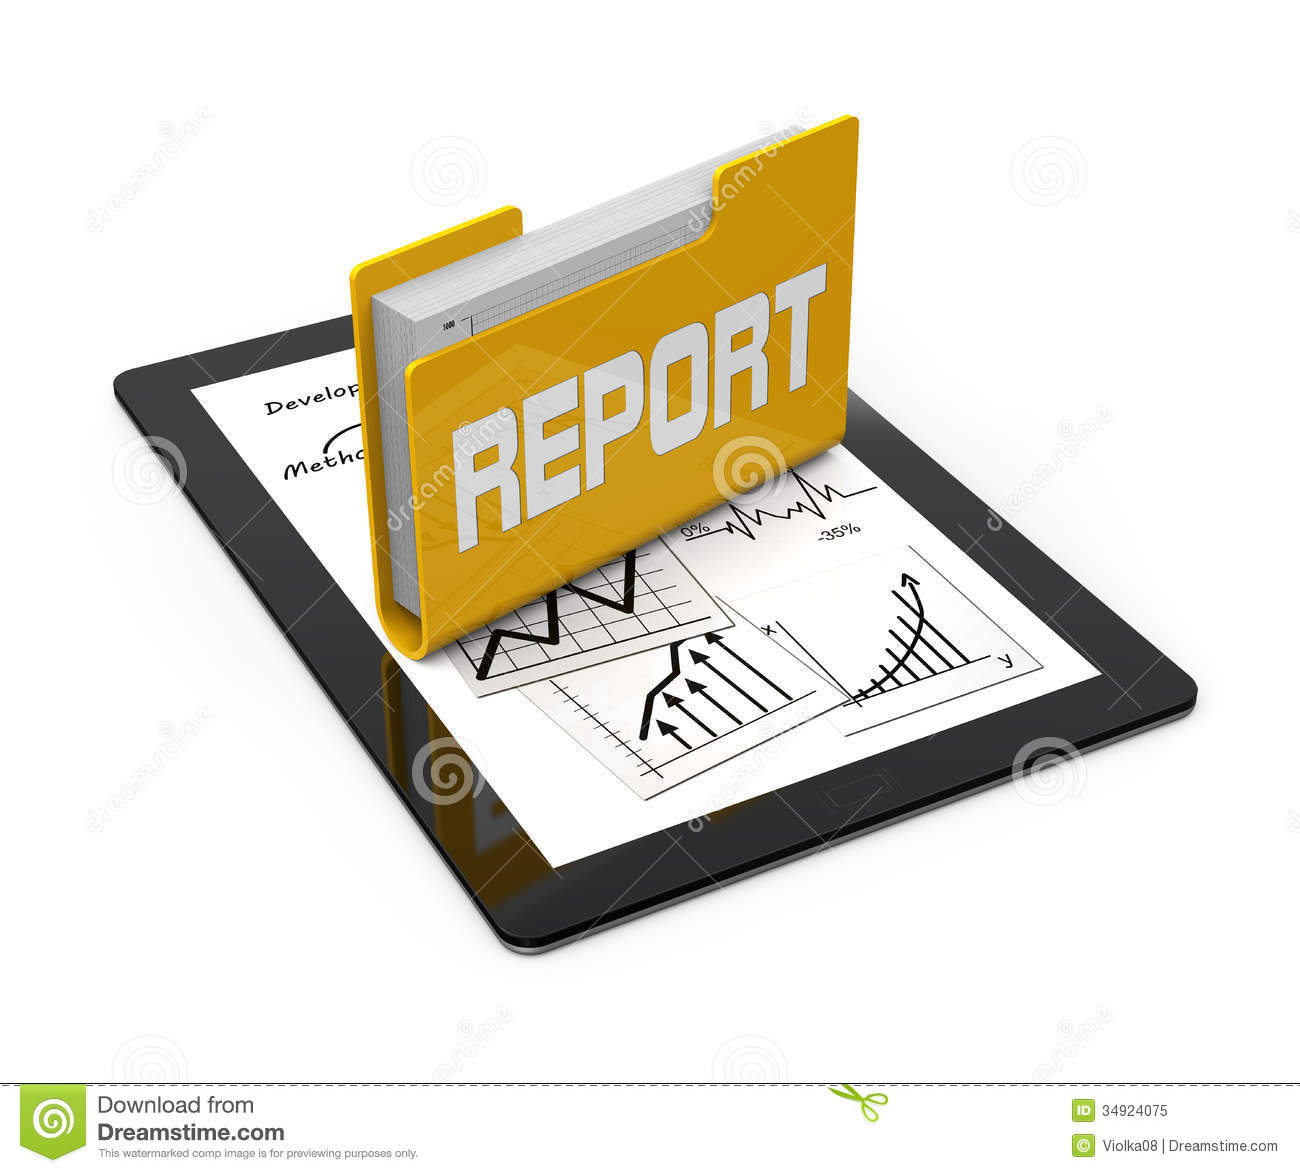 tablet computer market analysis economics Identify top companies for sales and analysis  computer operating system market and microsoft's gaming consoles  leading computer (desktop/tablet.